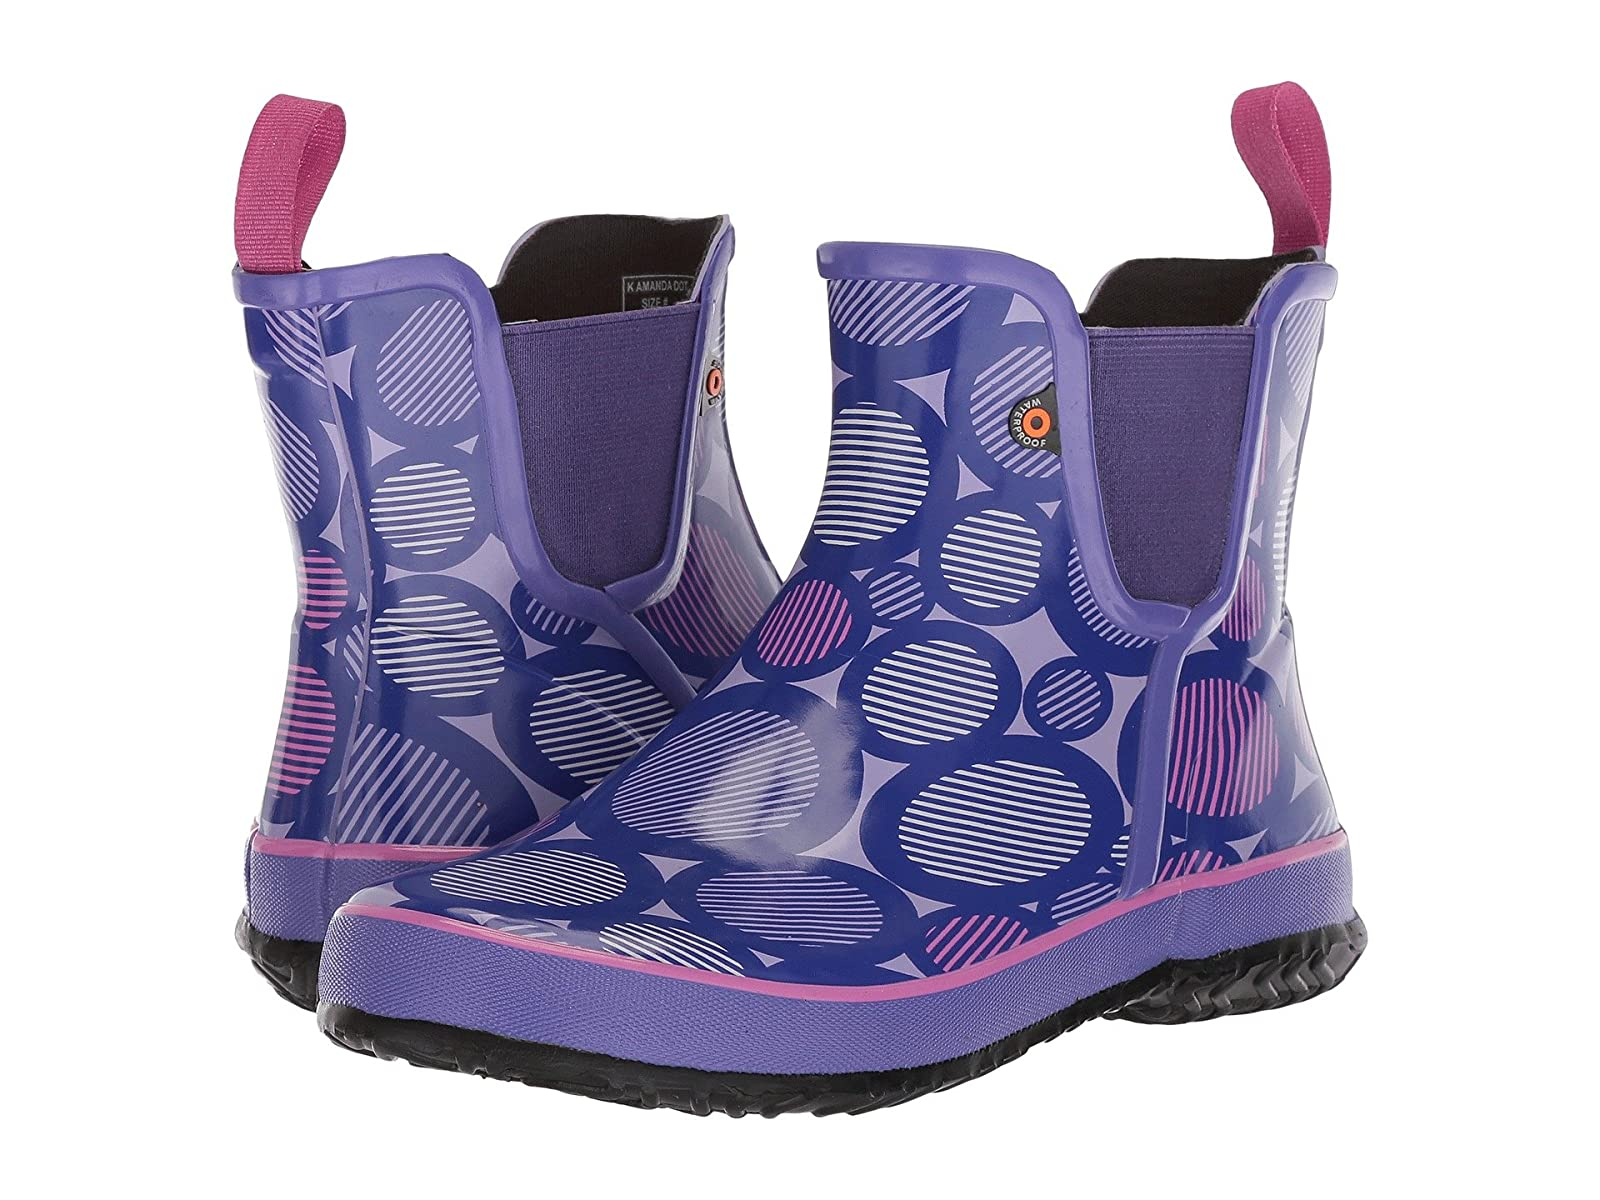 Bogs Kids Amanda Slip-On Dot (Toddler/Little Kid/Big Kid)Selling fashionable and eye-catching shoes